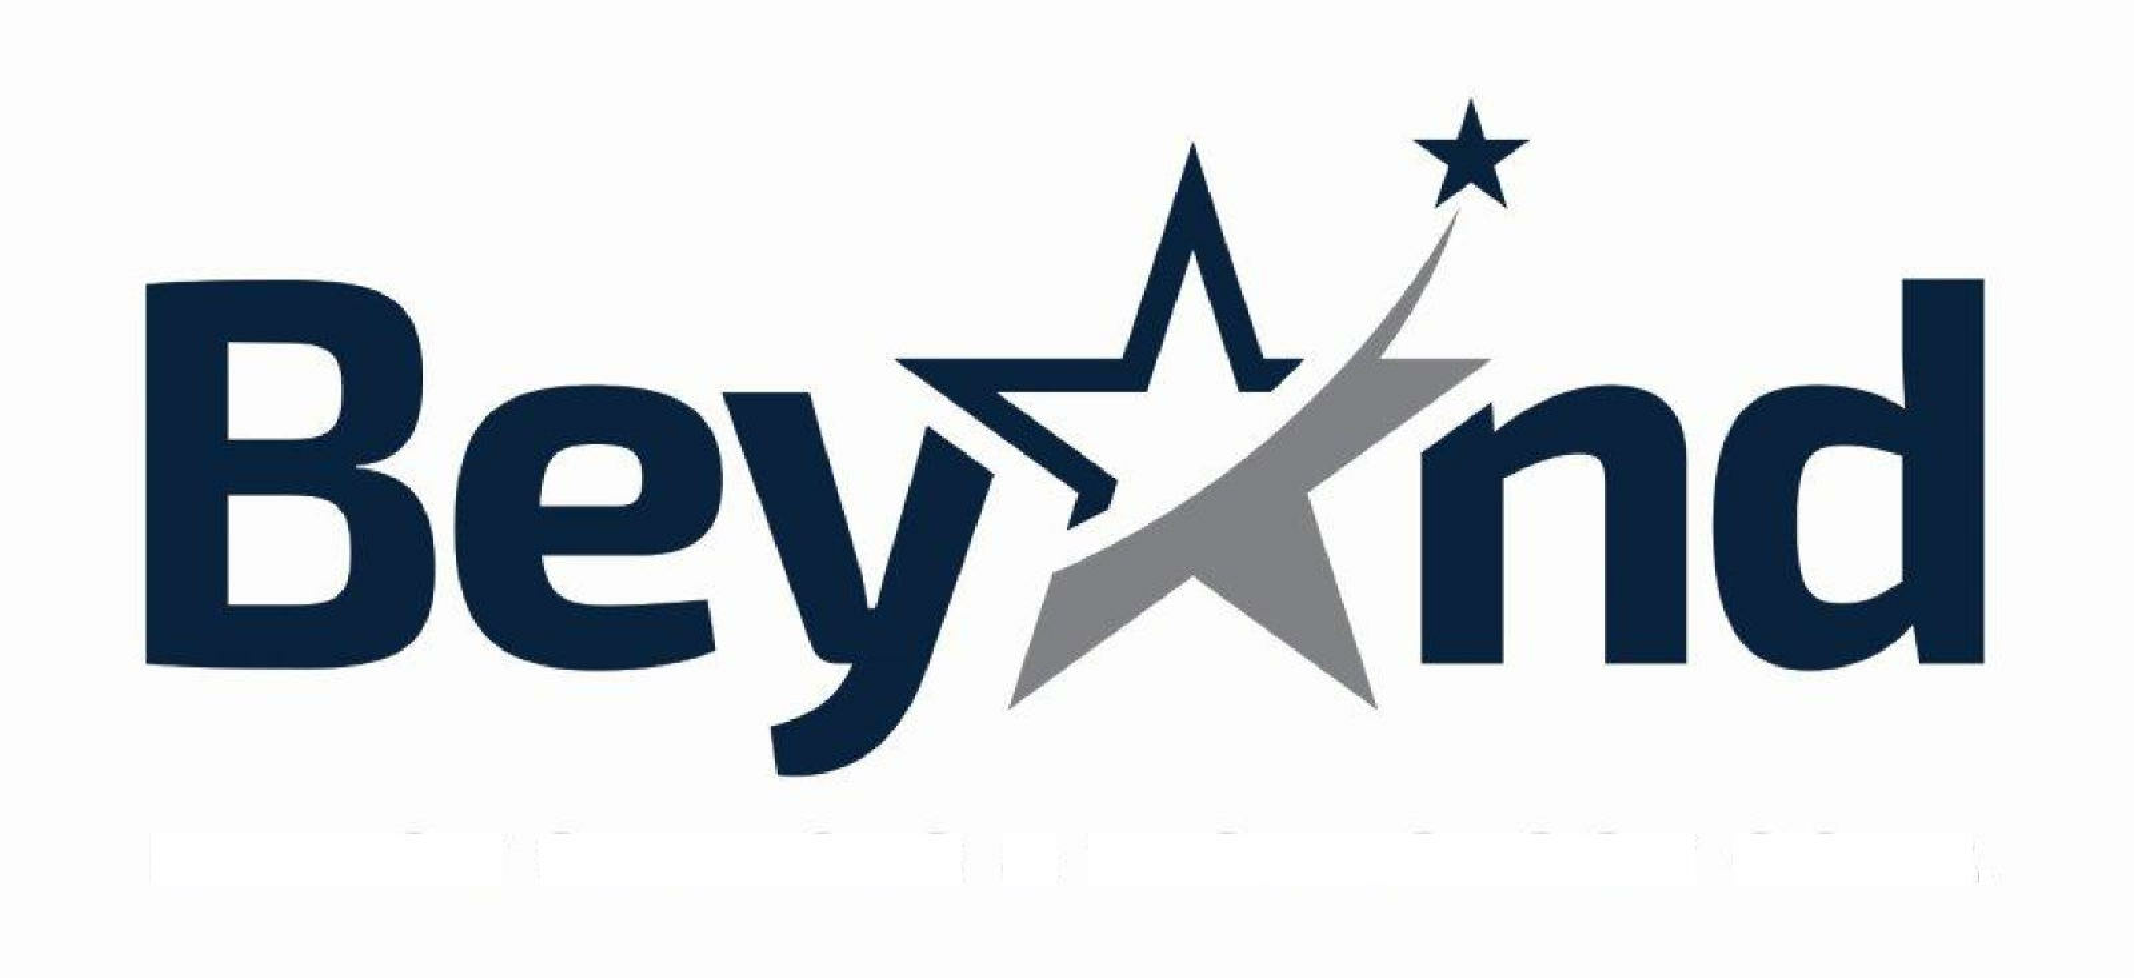 Beyond Energy Services & Technology Corp logo